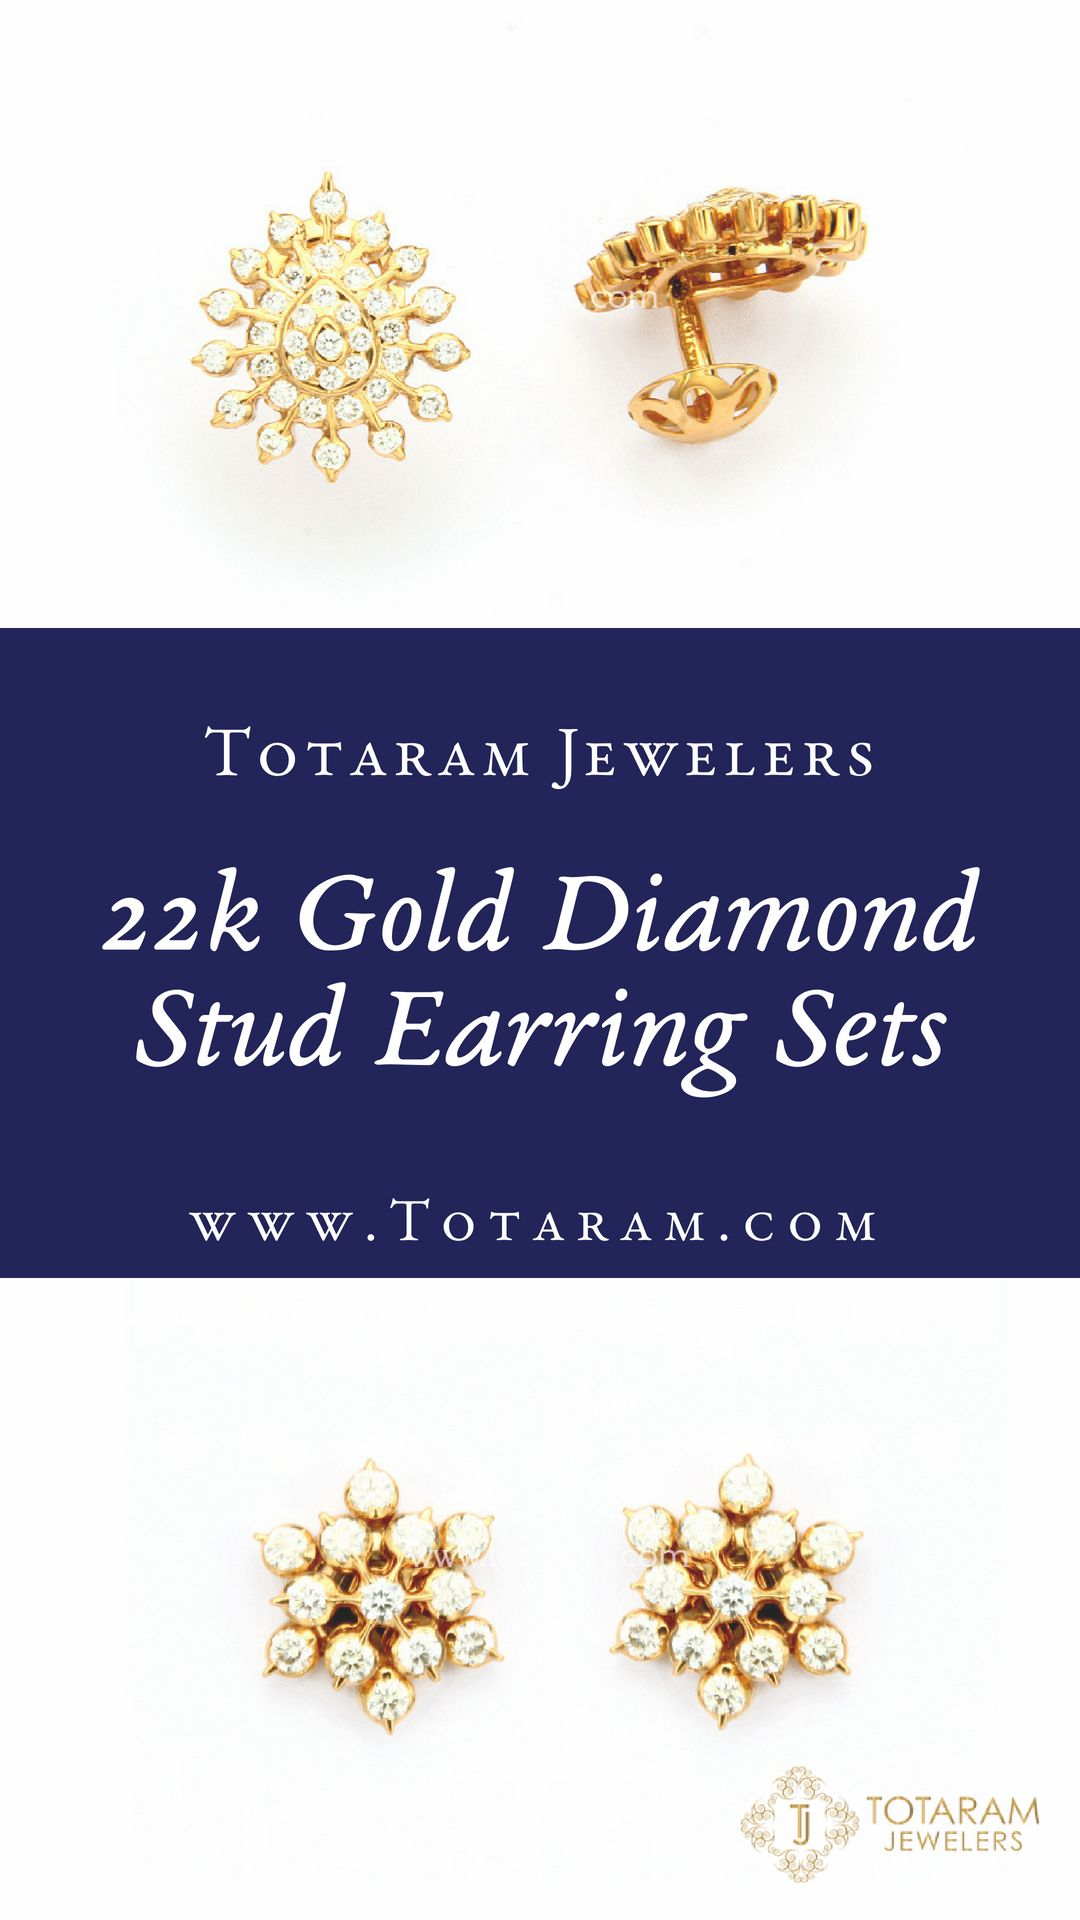 b95e9acb3 Every woman should have a cute go-to pair of diamond stud earrings in their